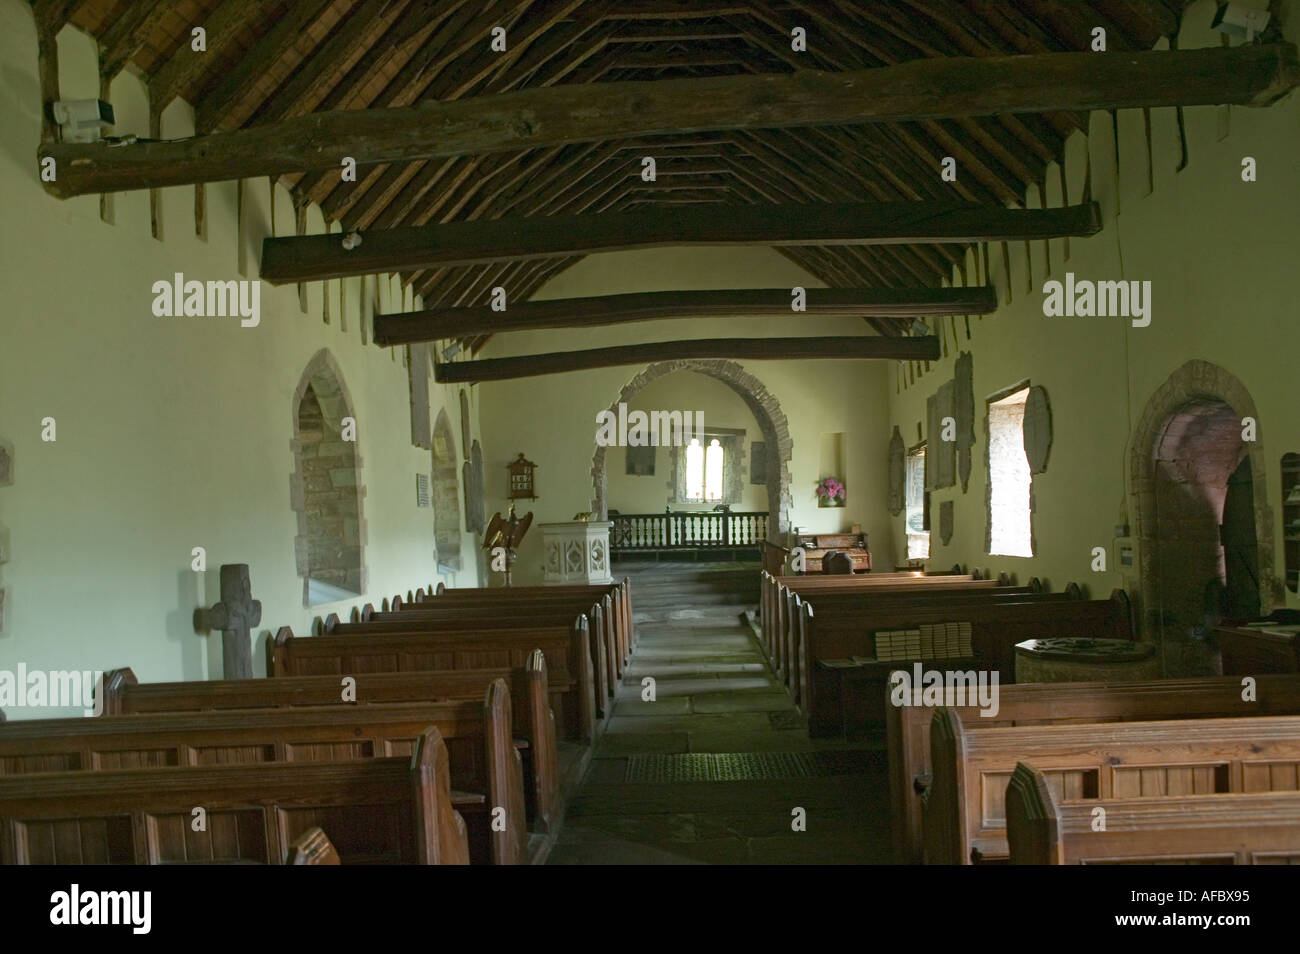 Interior St Martins church affected by subsidence Cwmyoy Mid Wales UK - Stock Image